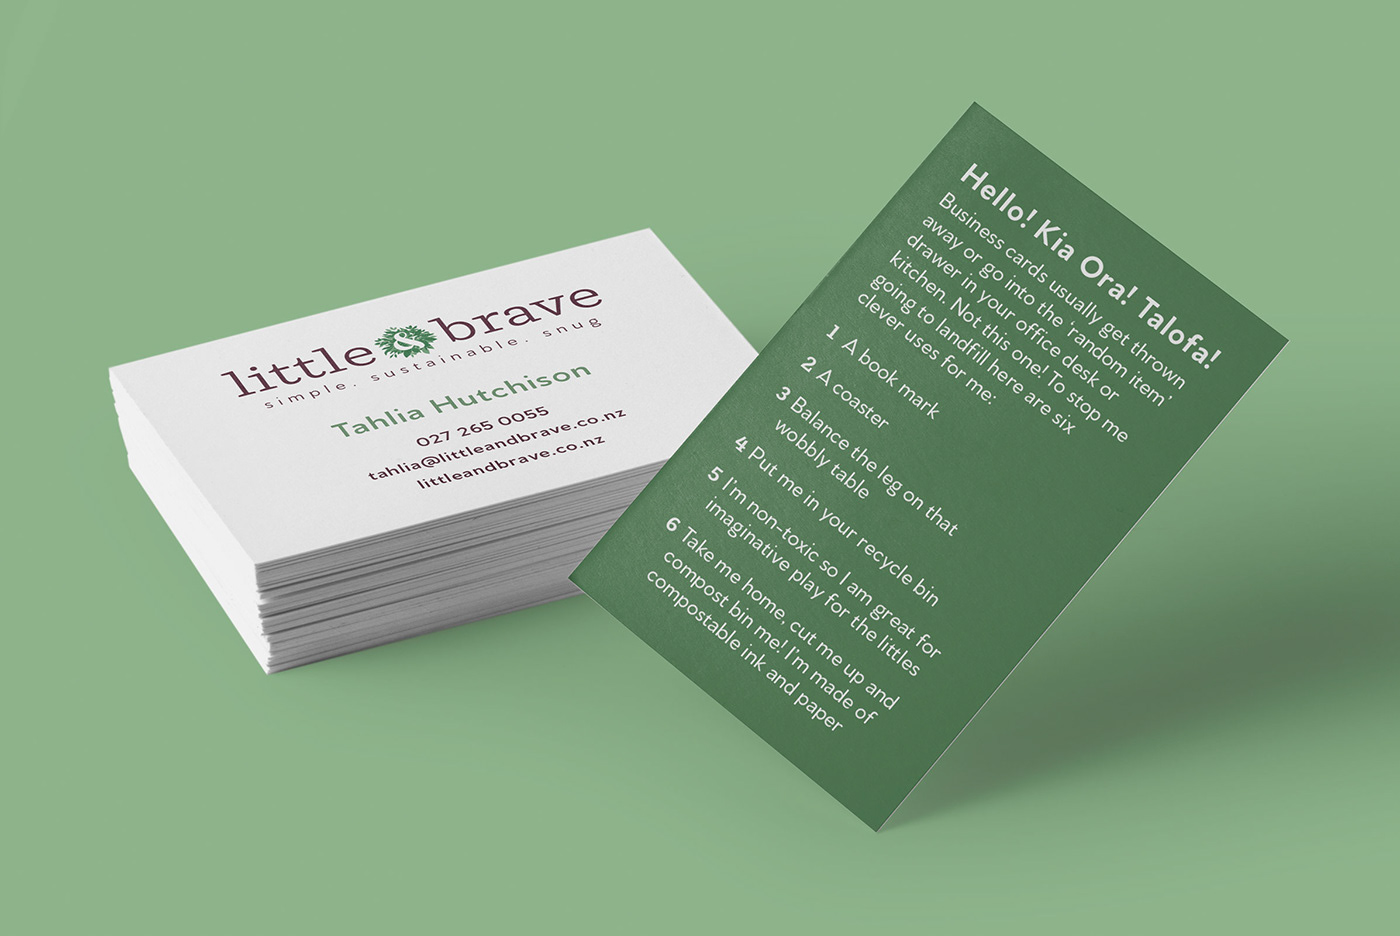 eco friendly compostable, recyclable business cards